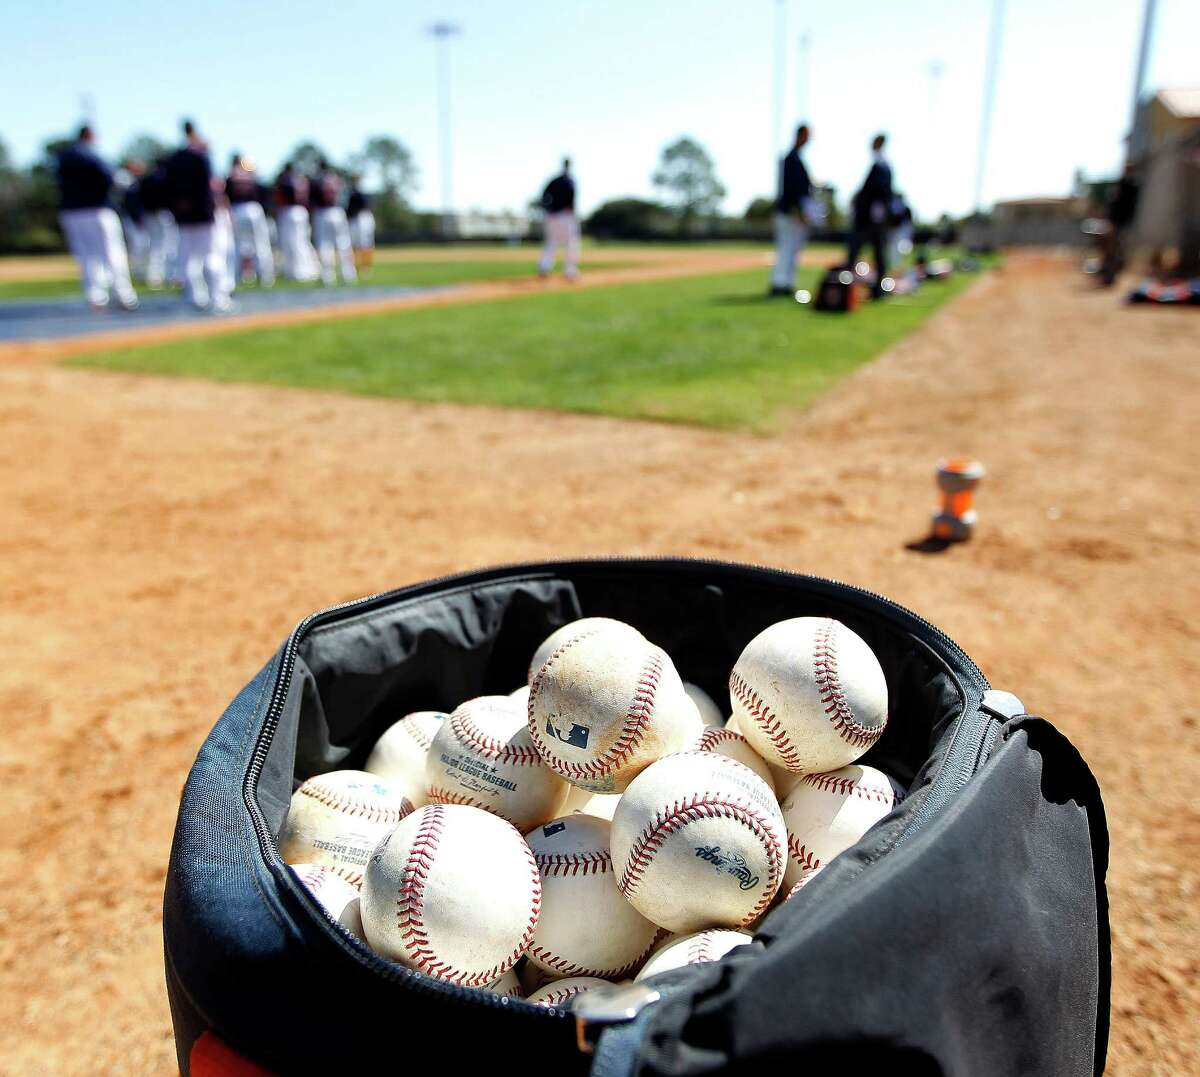 An Astros player tested positive for COVID-19 at the club's spring training facility.